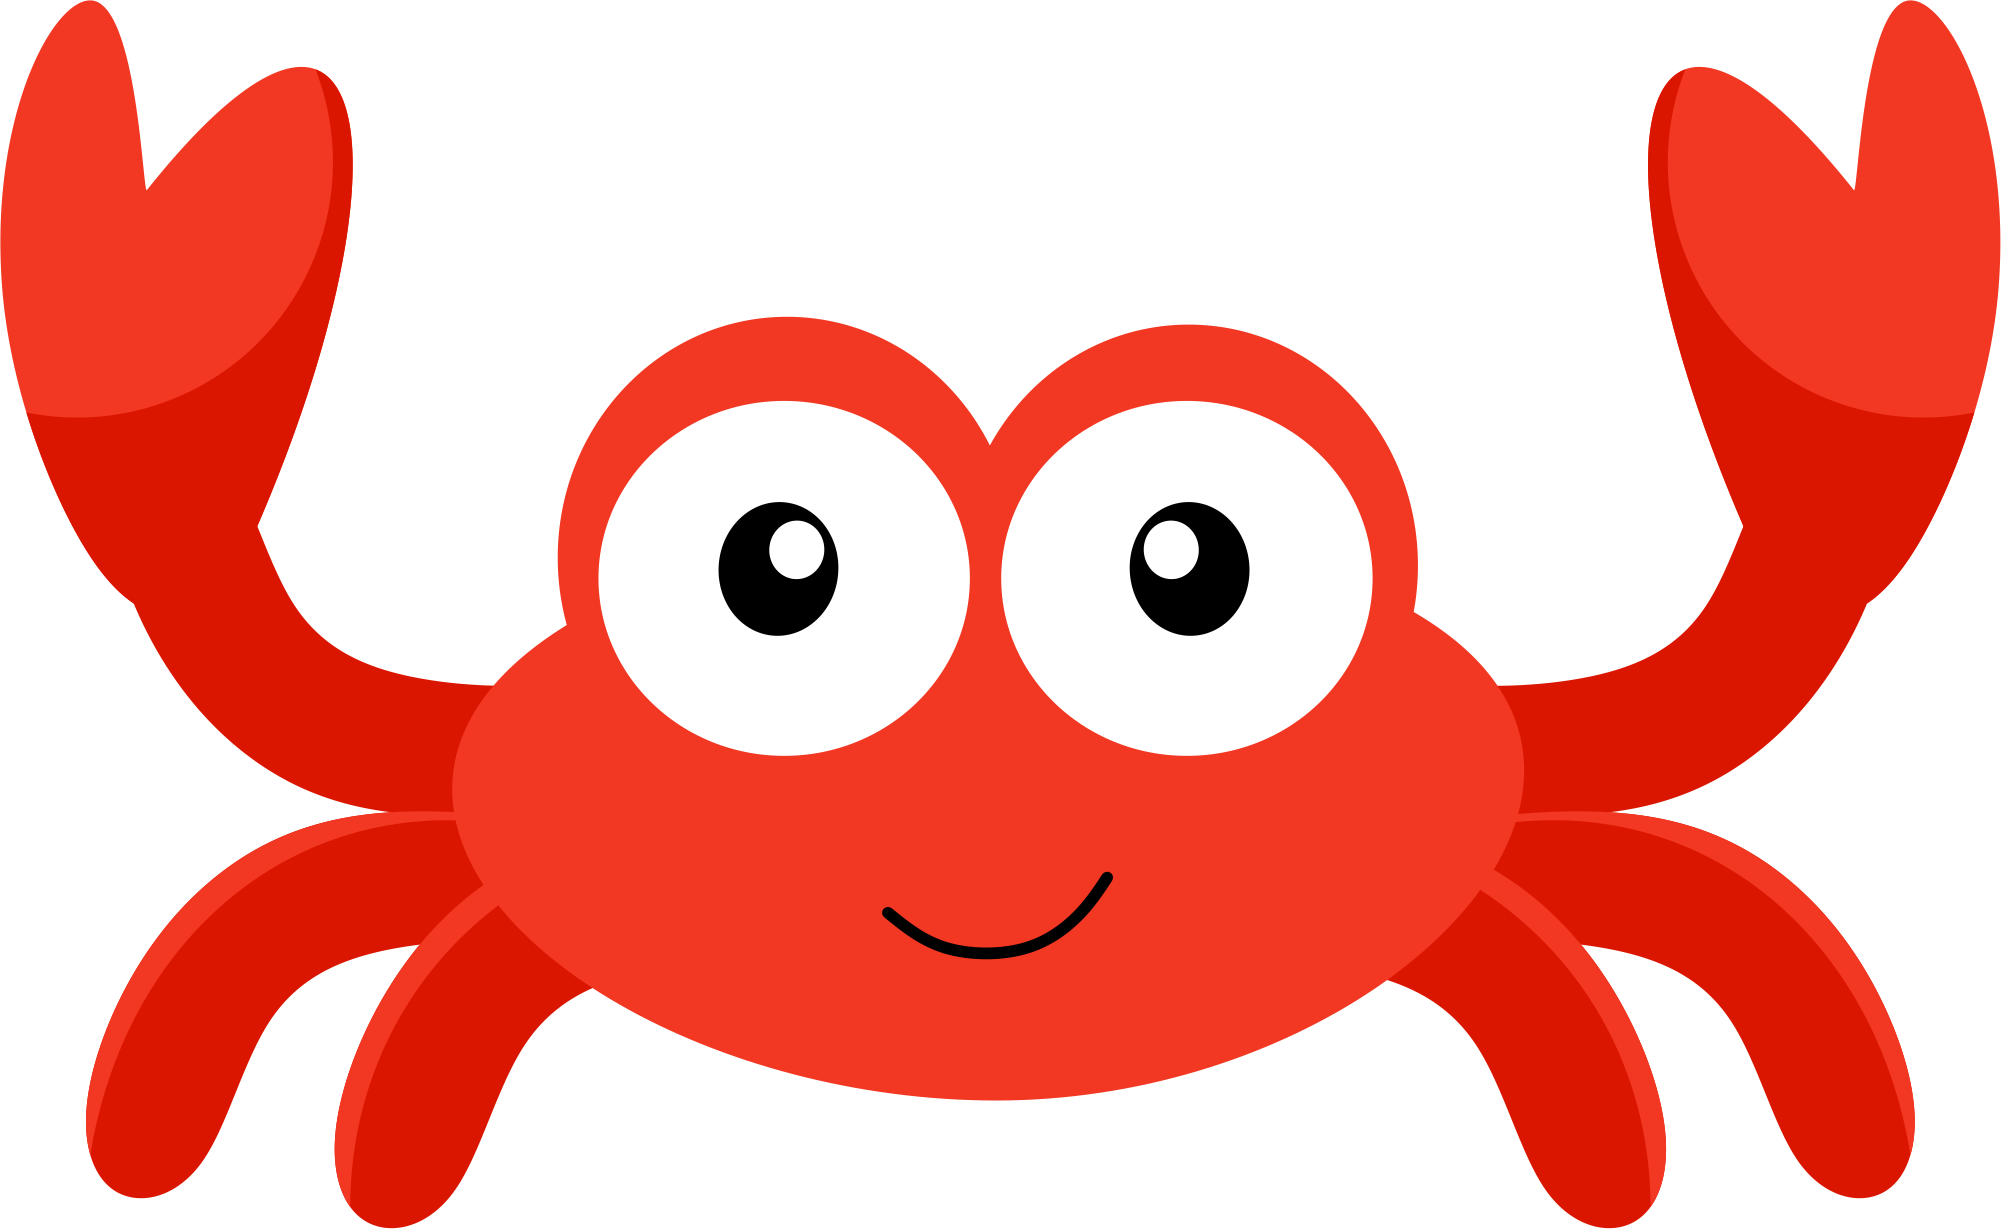 Baby png transparent images. Crab clipart red thing